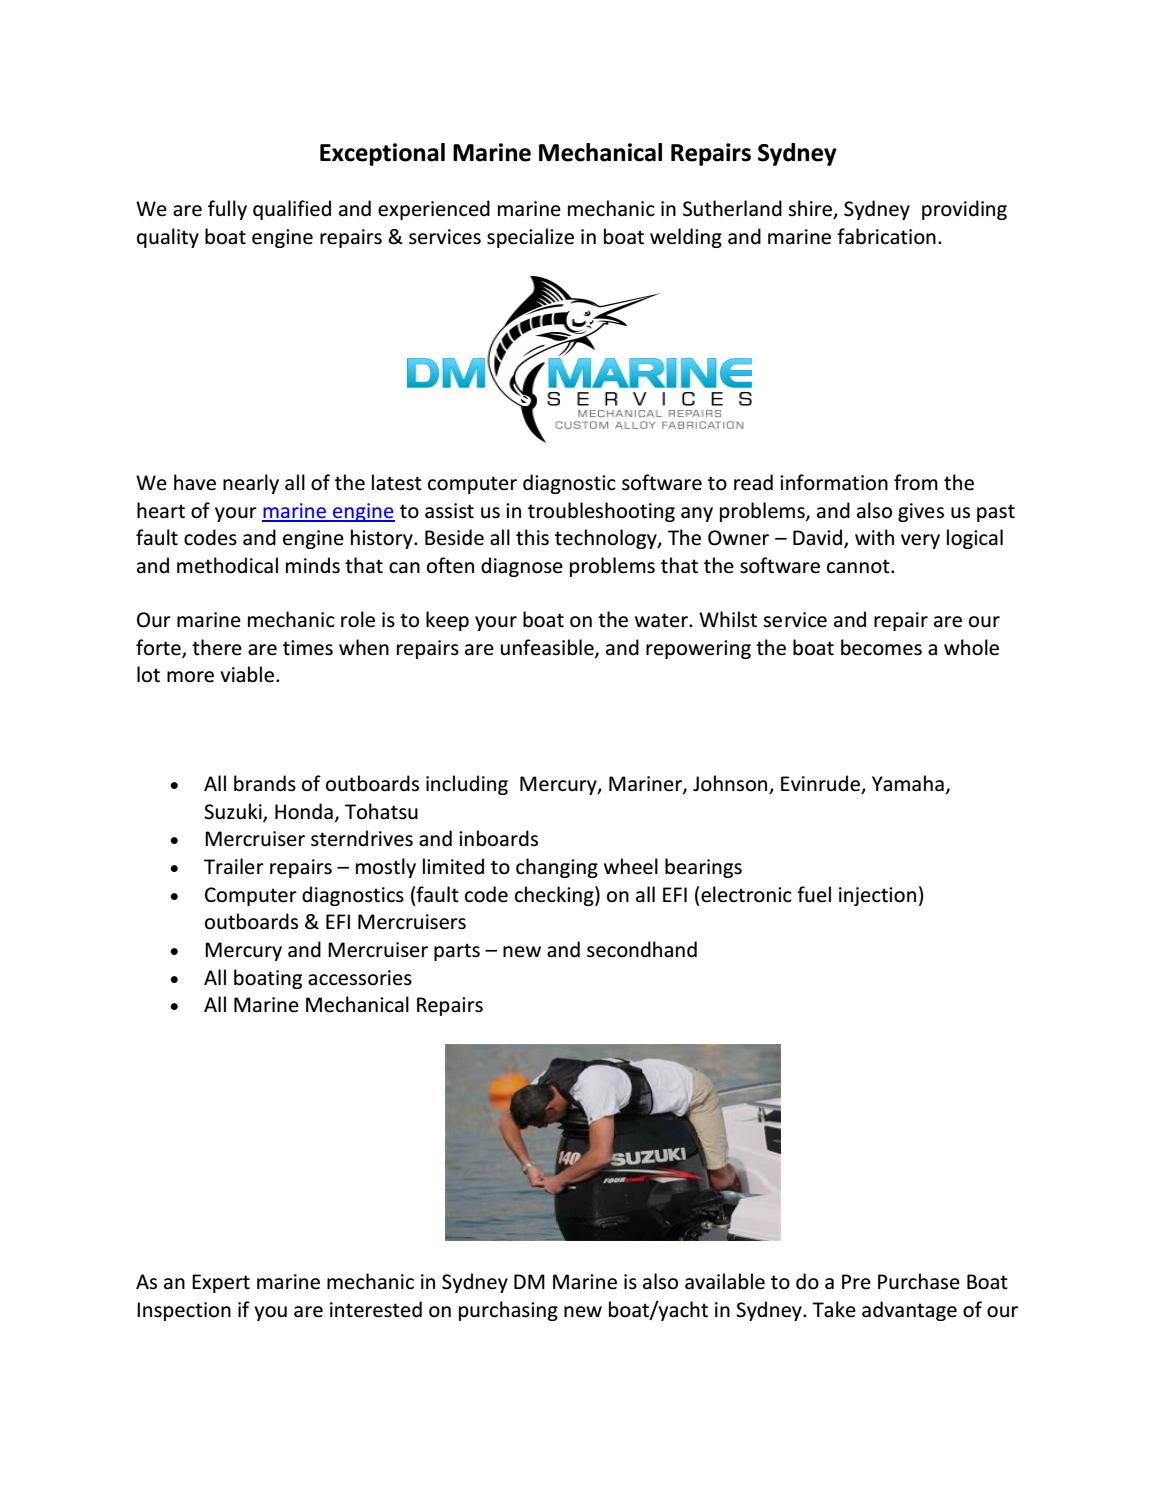 Exceptional marine mechanical repairs sydney by DM Marine Services